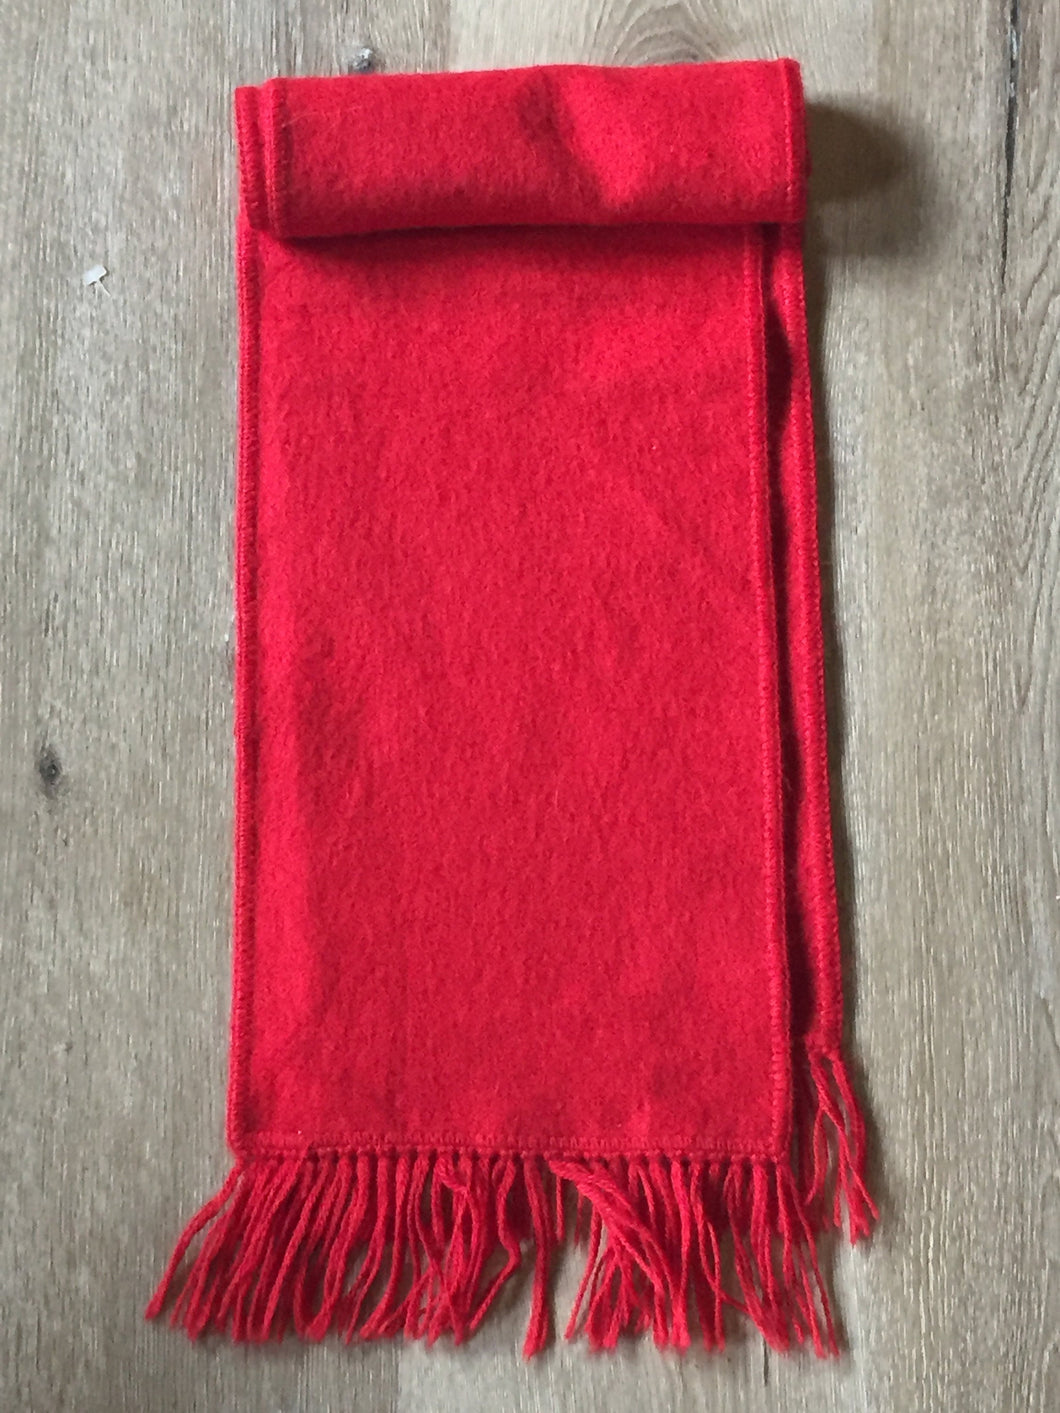 (SOLD) Vintage red wool scarf